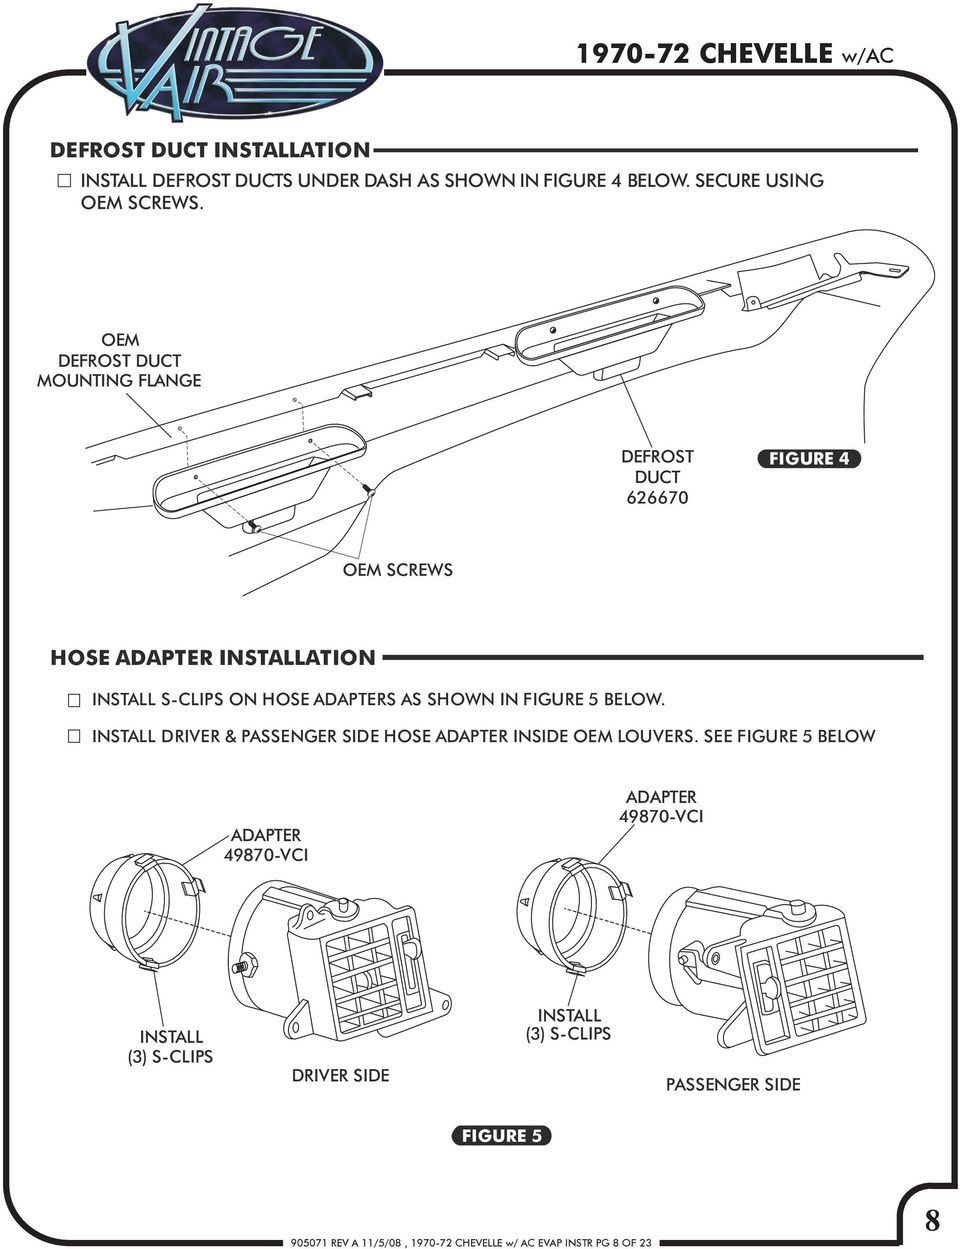 Chevelle W Factory Air Rev A 11 5 08 Ac Evap Instr Pg C Compressor Relay Wiring Diagram Pot In Figure Below Install Driver Passenger Side Adapter Inside Oem Louvers